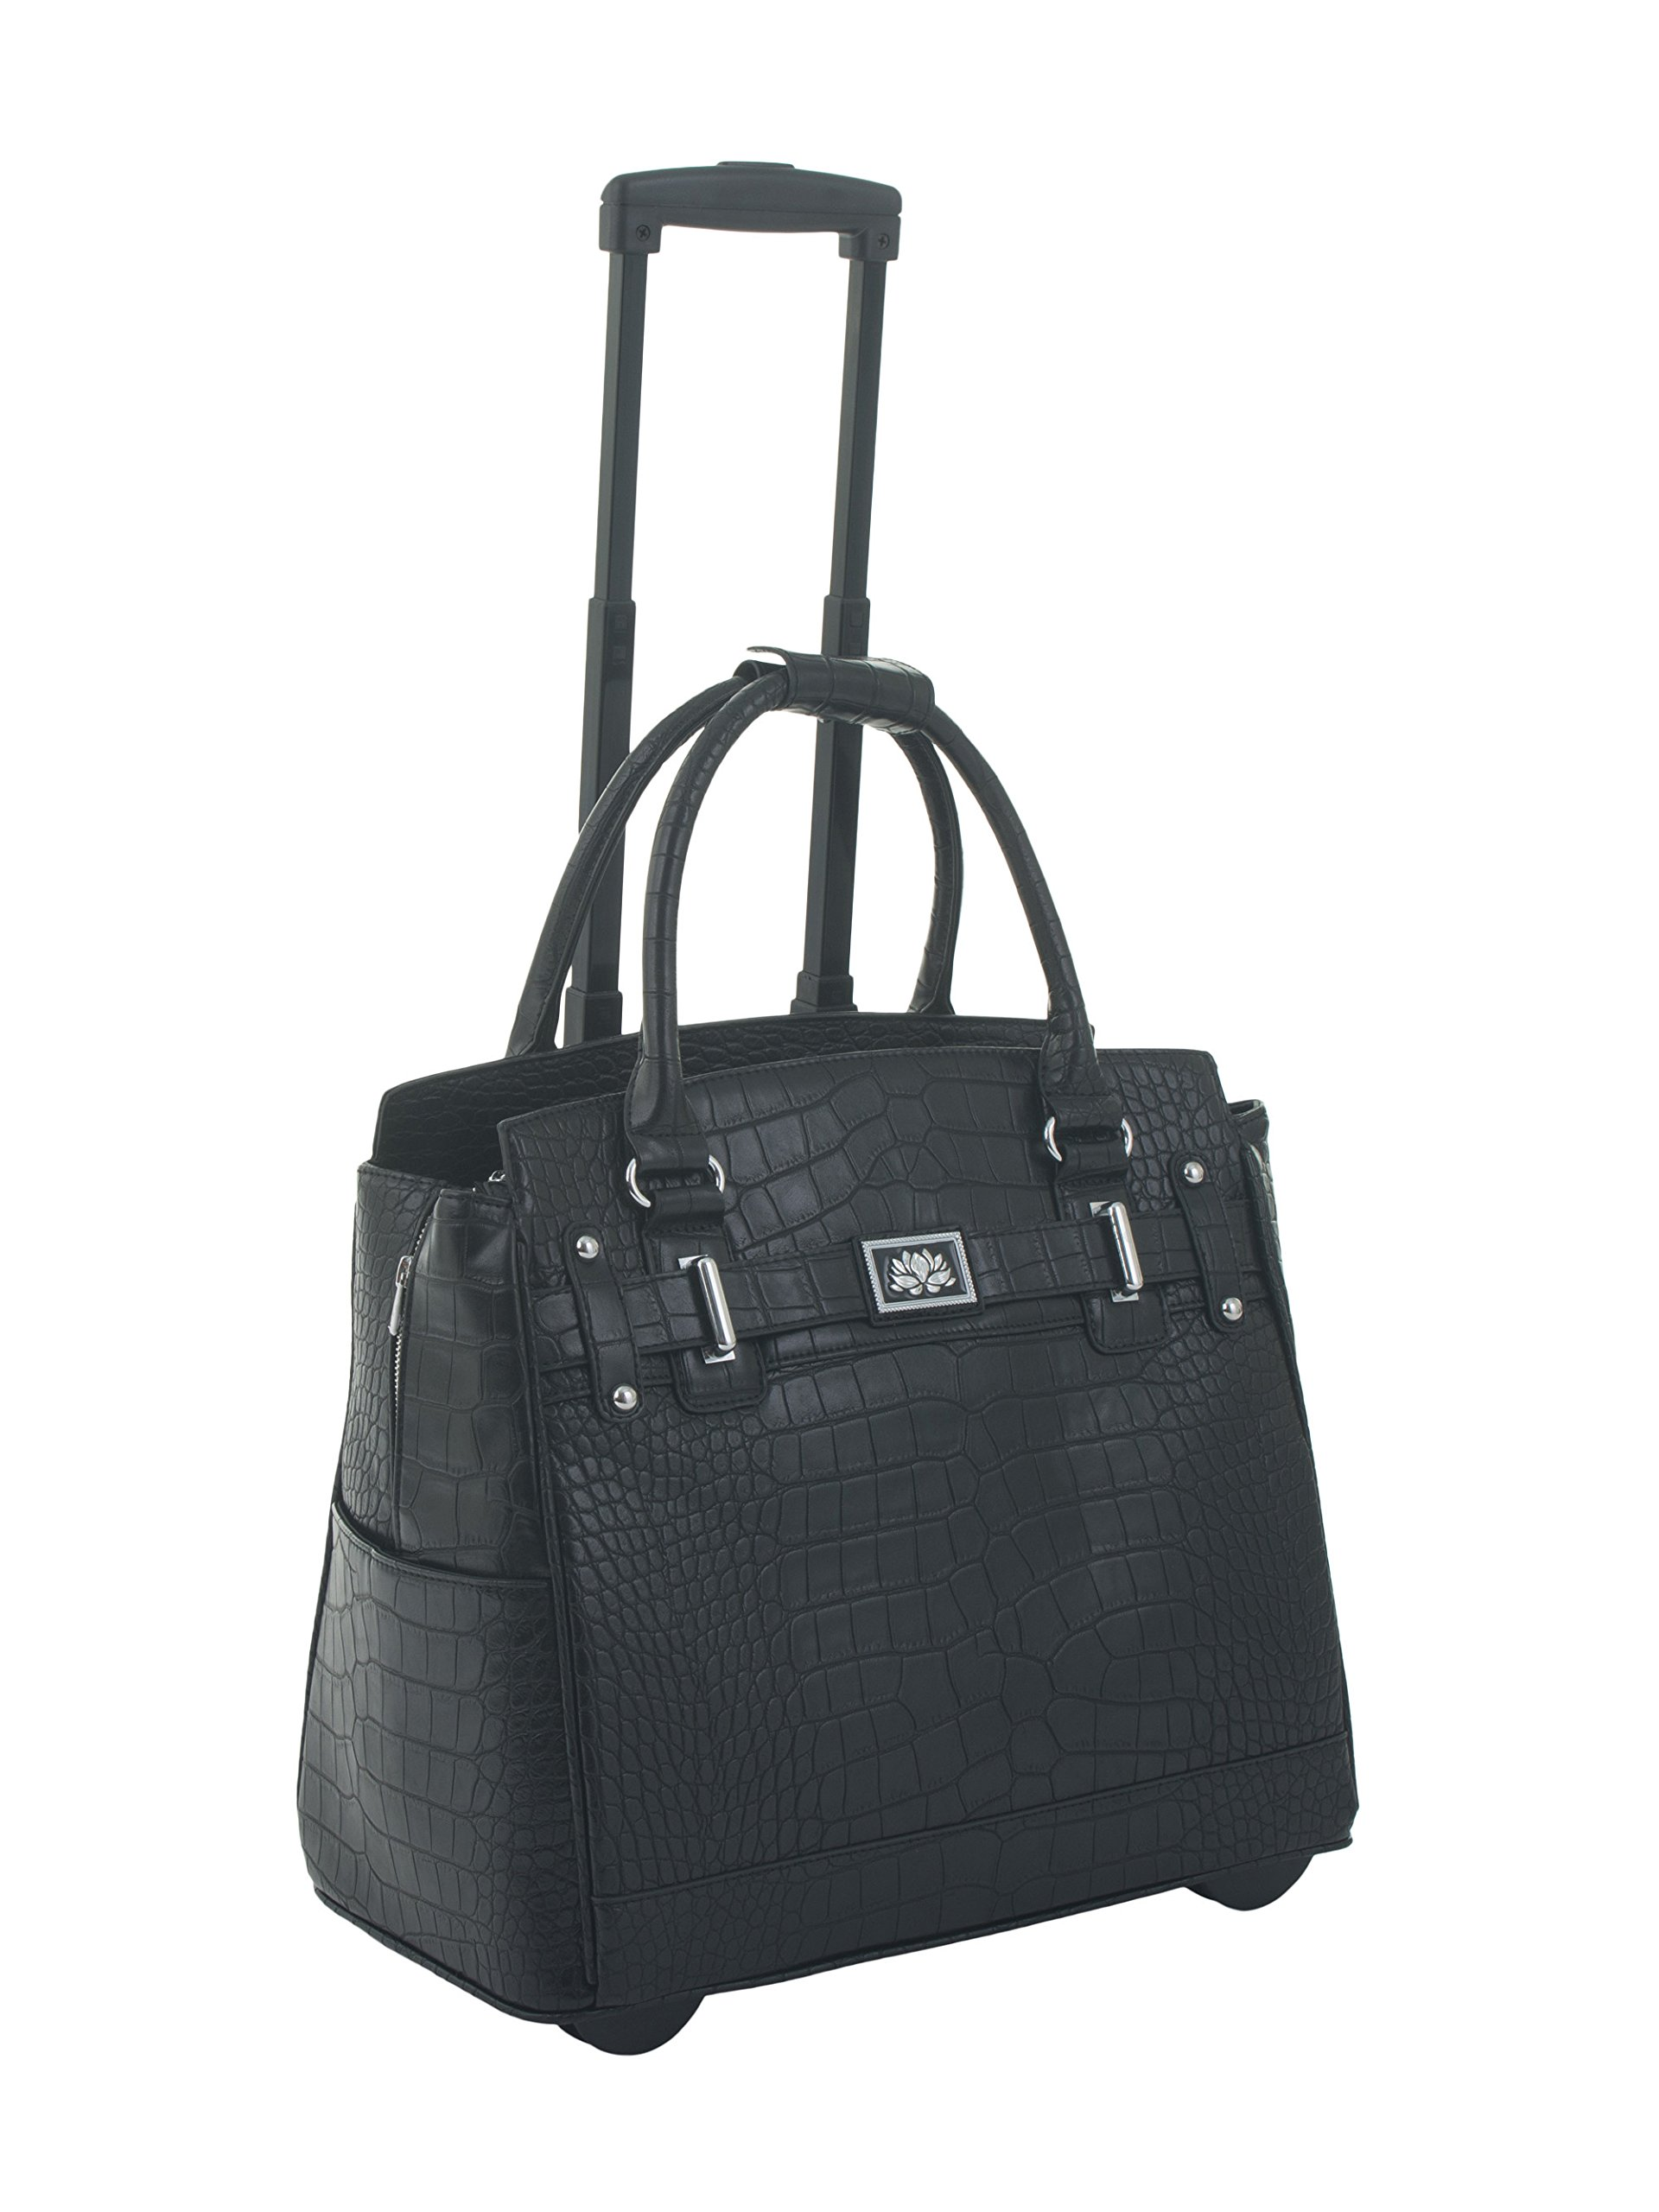 ''The Classic'' Black Alligator Crocodile Rolling iPad Tablet or Laptop Tote Carryall Bag by JKM and Company